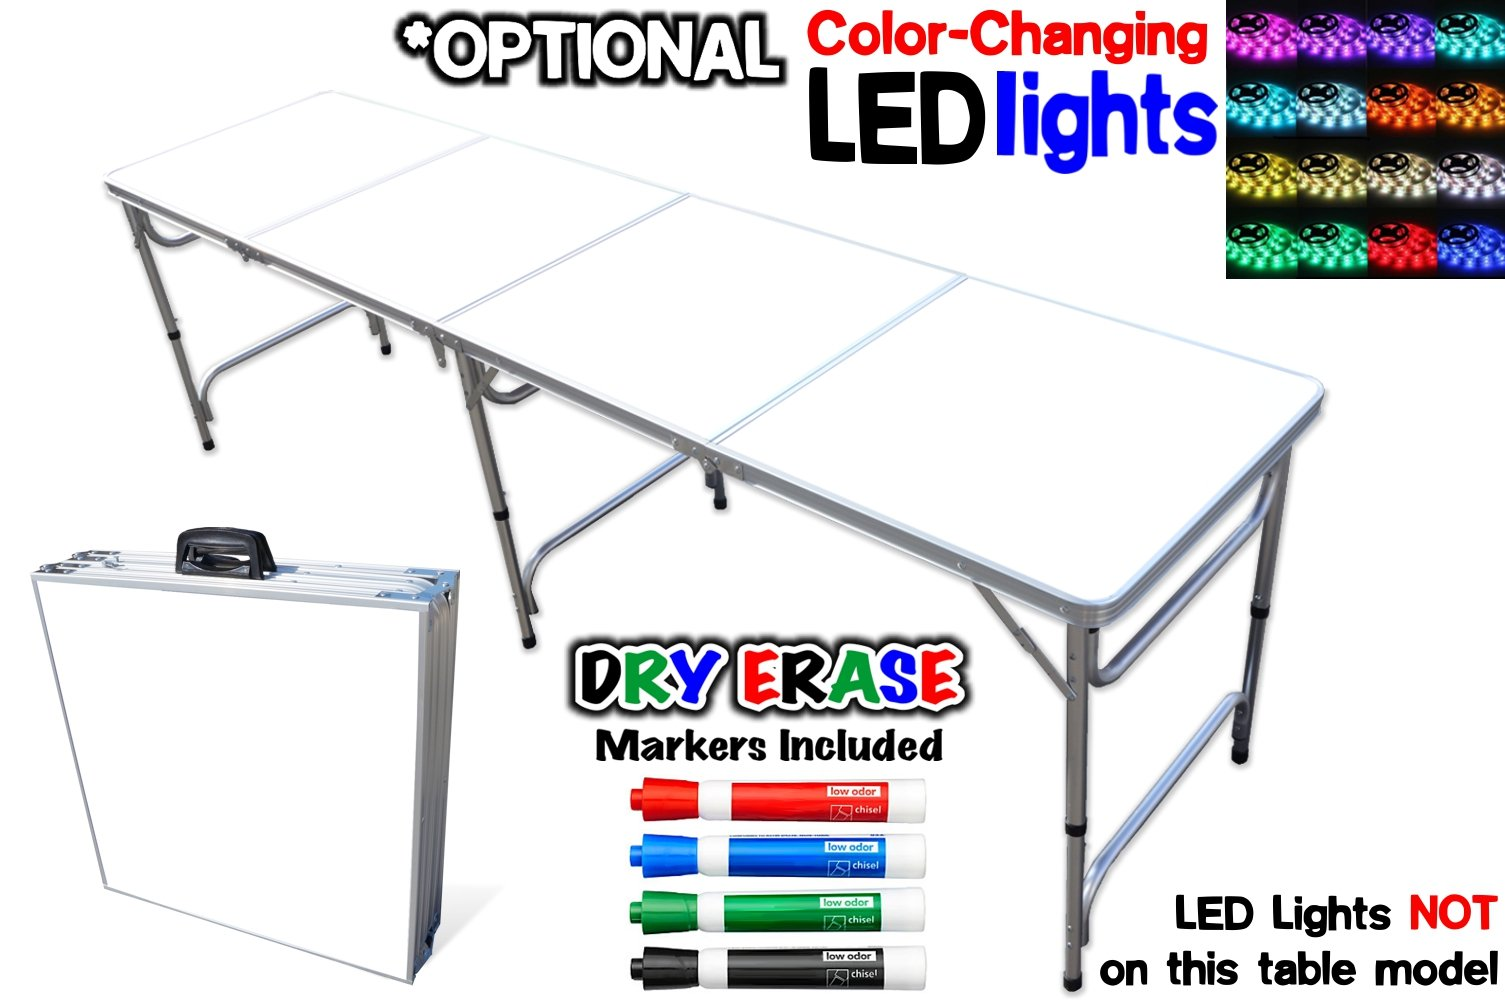 PartyPongTables.com Portable Folding Table w/Dry Erase Surface & Markers for Art, Classroom, Parties, and More 4 ft or 8 ft by PartyPongTables.com